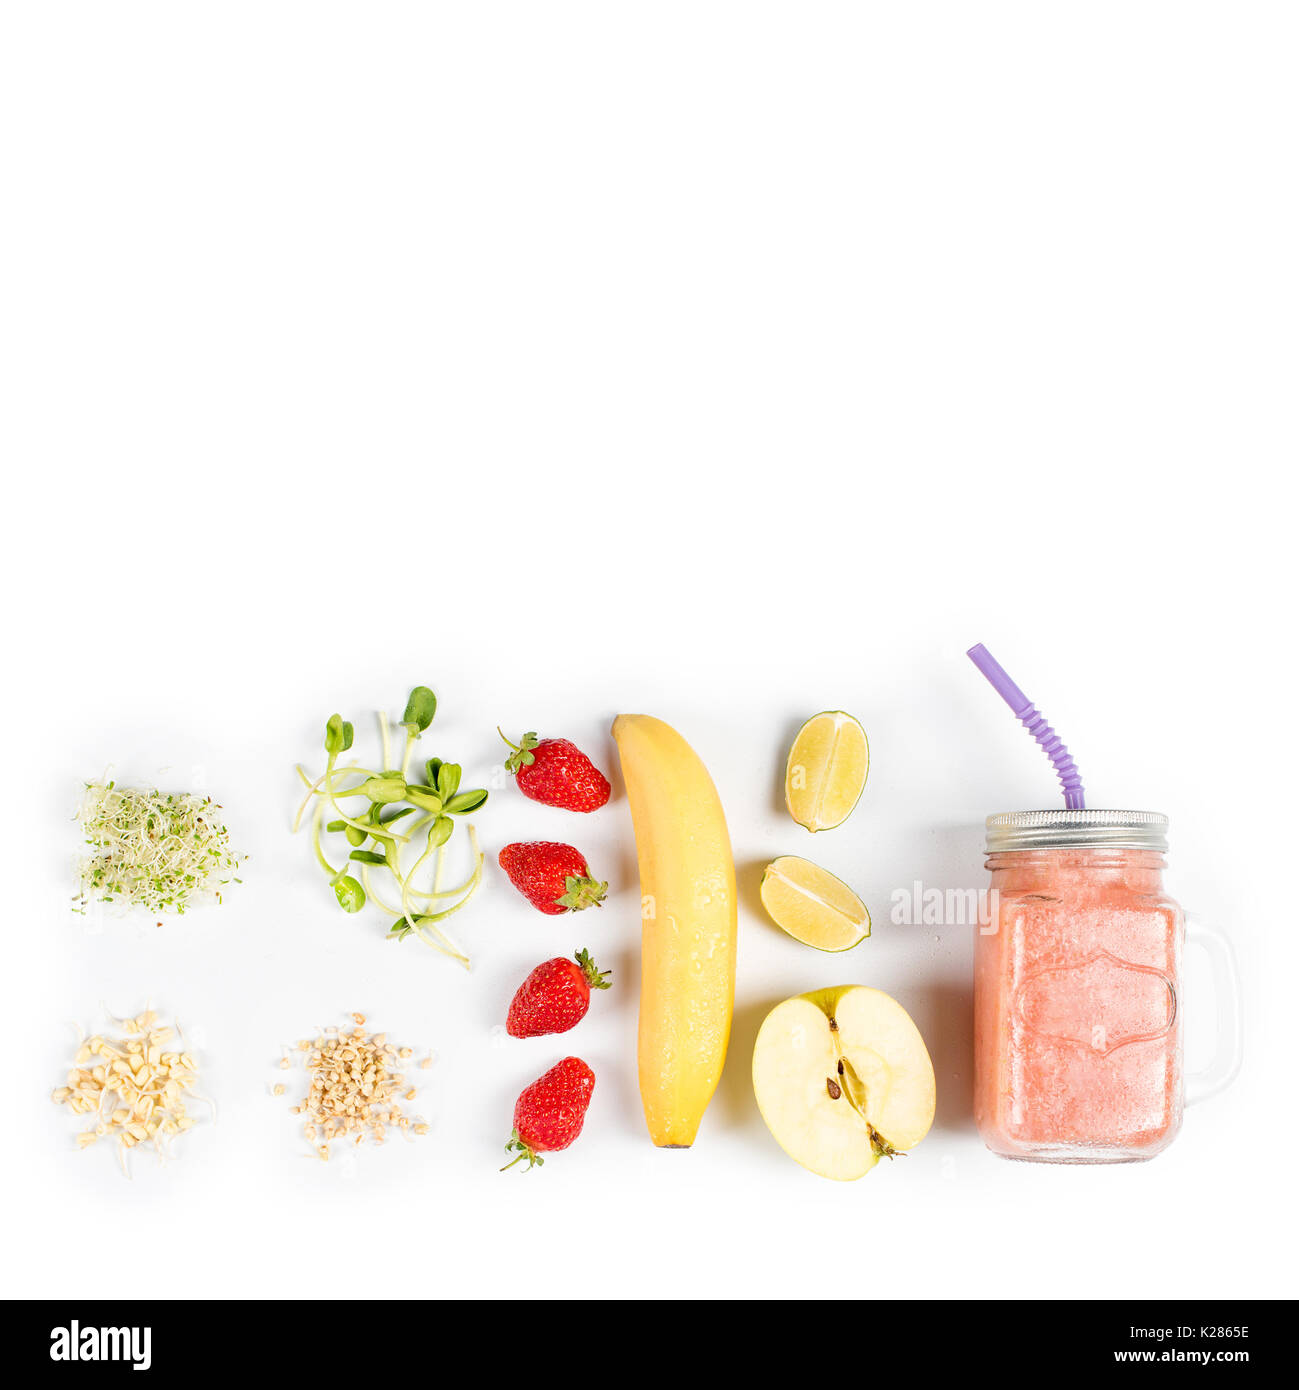 Detox cleanse drink, fruits and berries smoothie ingredients. Natural, organic healthy juice for weight loss diet or fasting day. Mason jar of dietary drink with strawberries, microgreens and banana - Stock Image